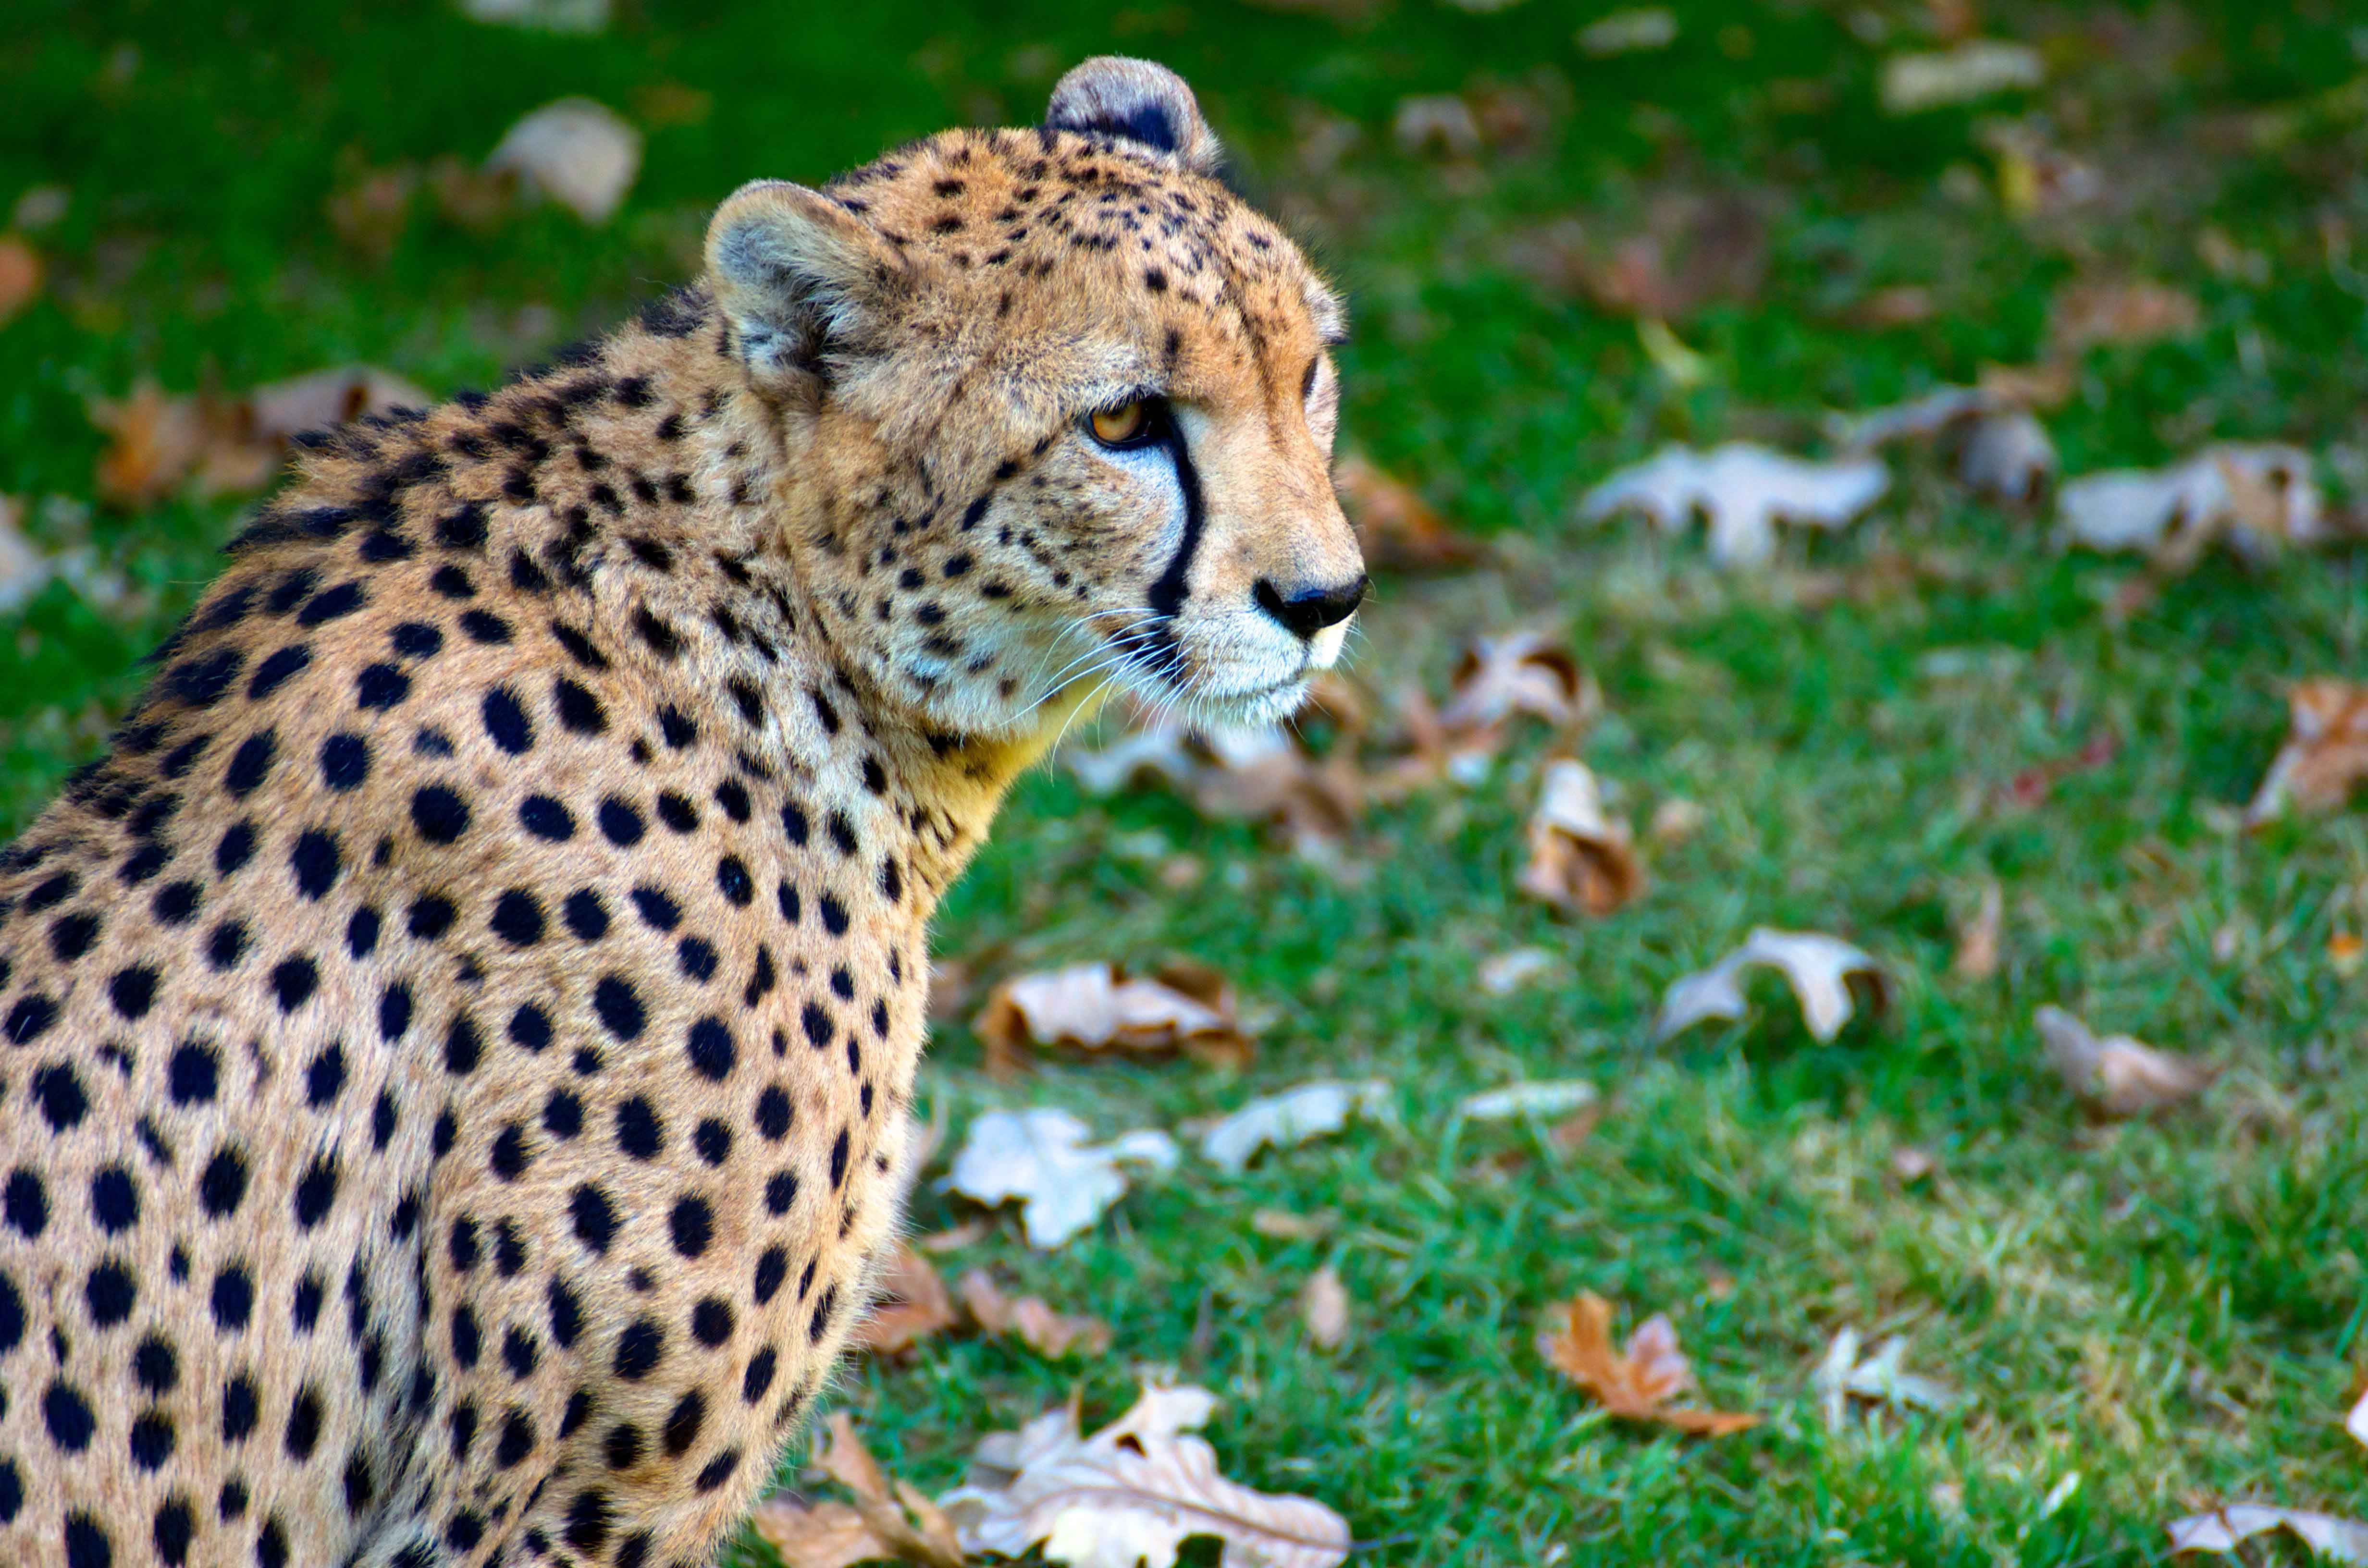 cheetah at Fort Worth Zoo